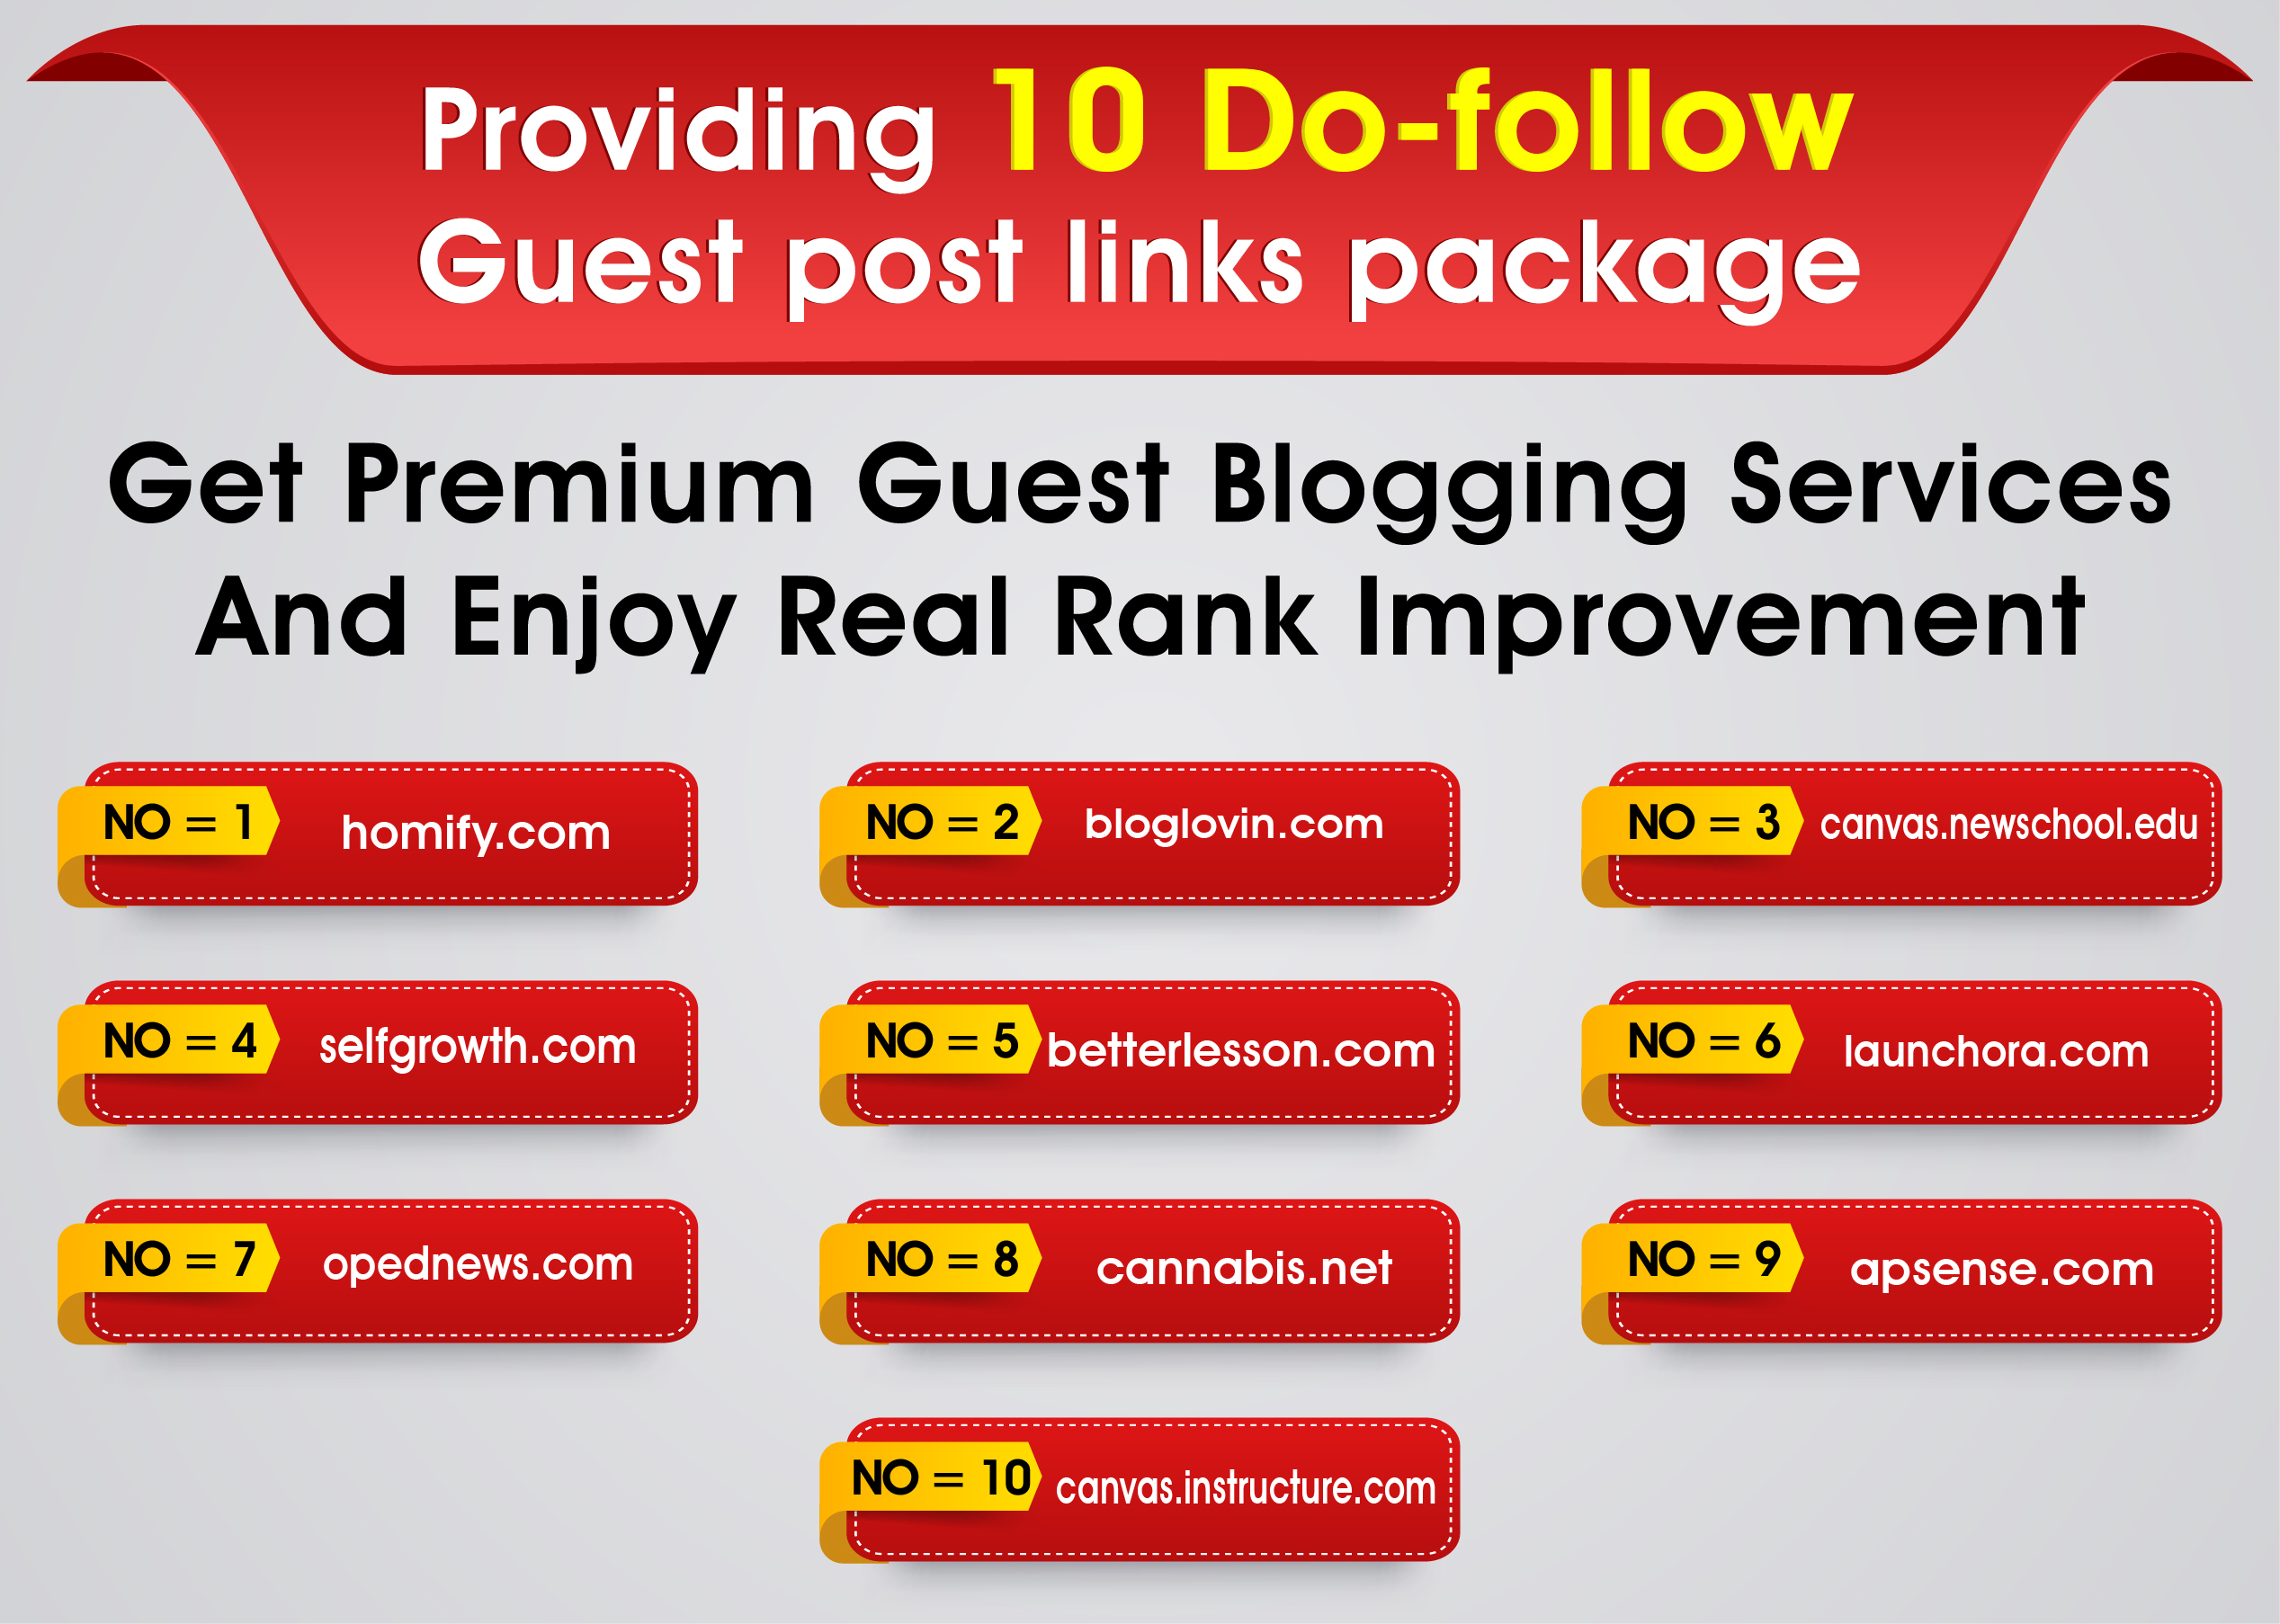 I can Do 10 Do-follow Guest post links package